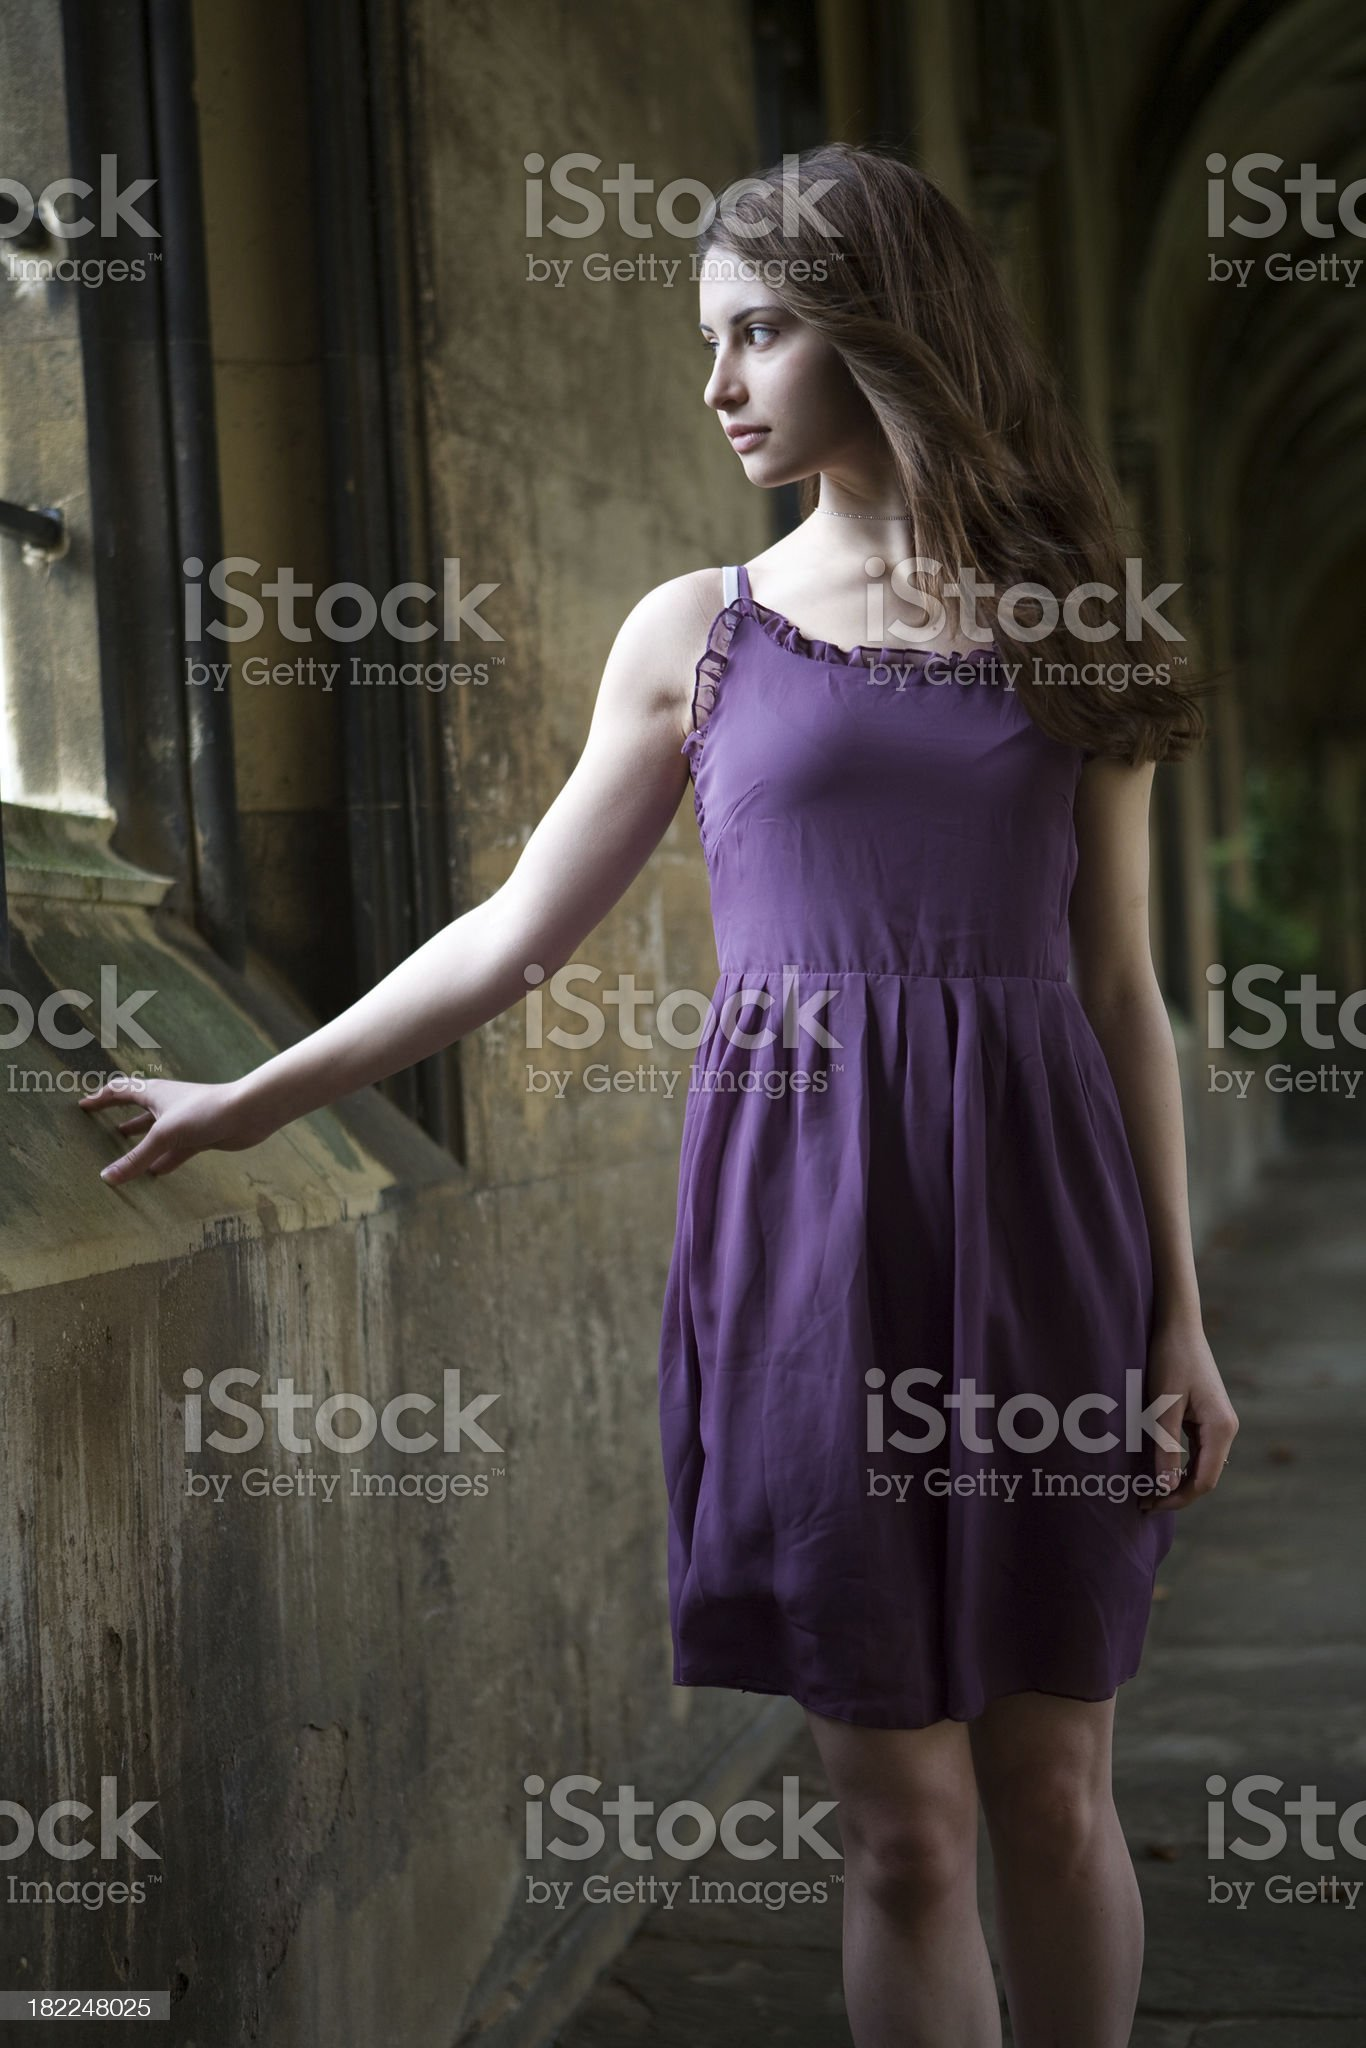 princess looking out of window royalty-free stock photo